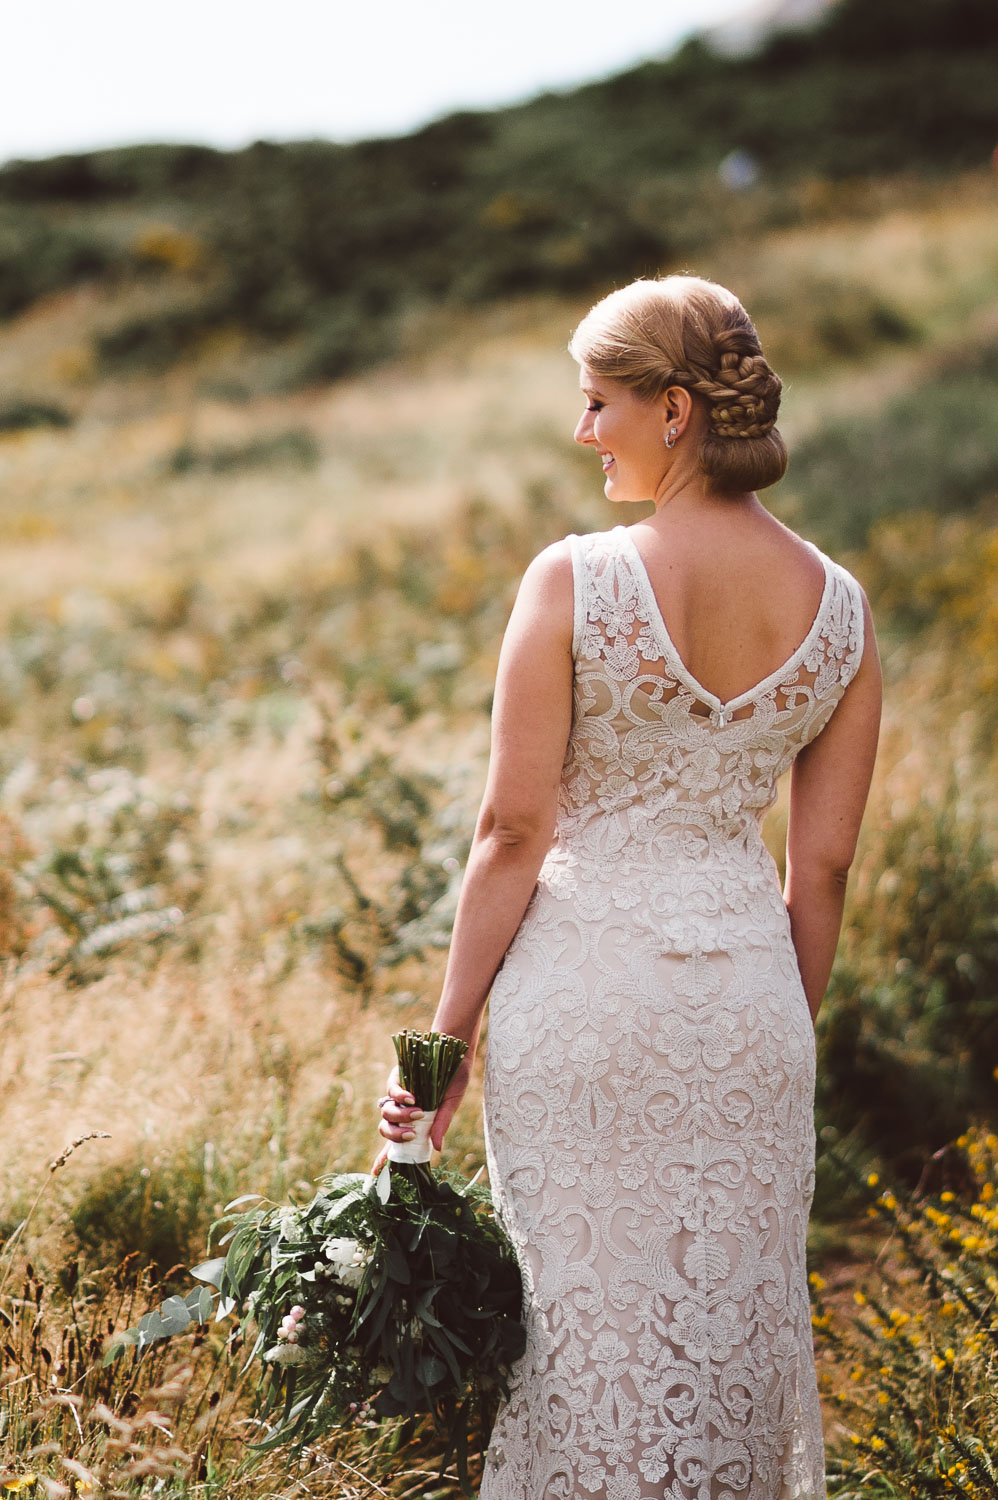 view of brides dress from back with flowers